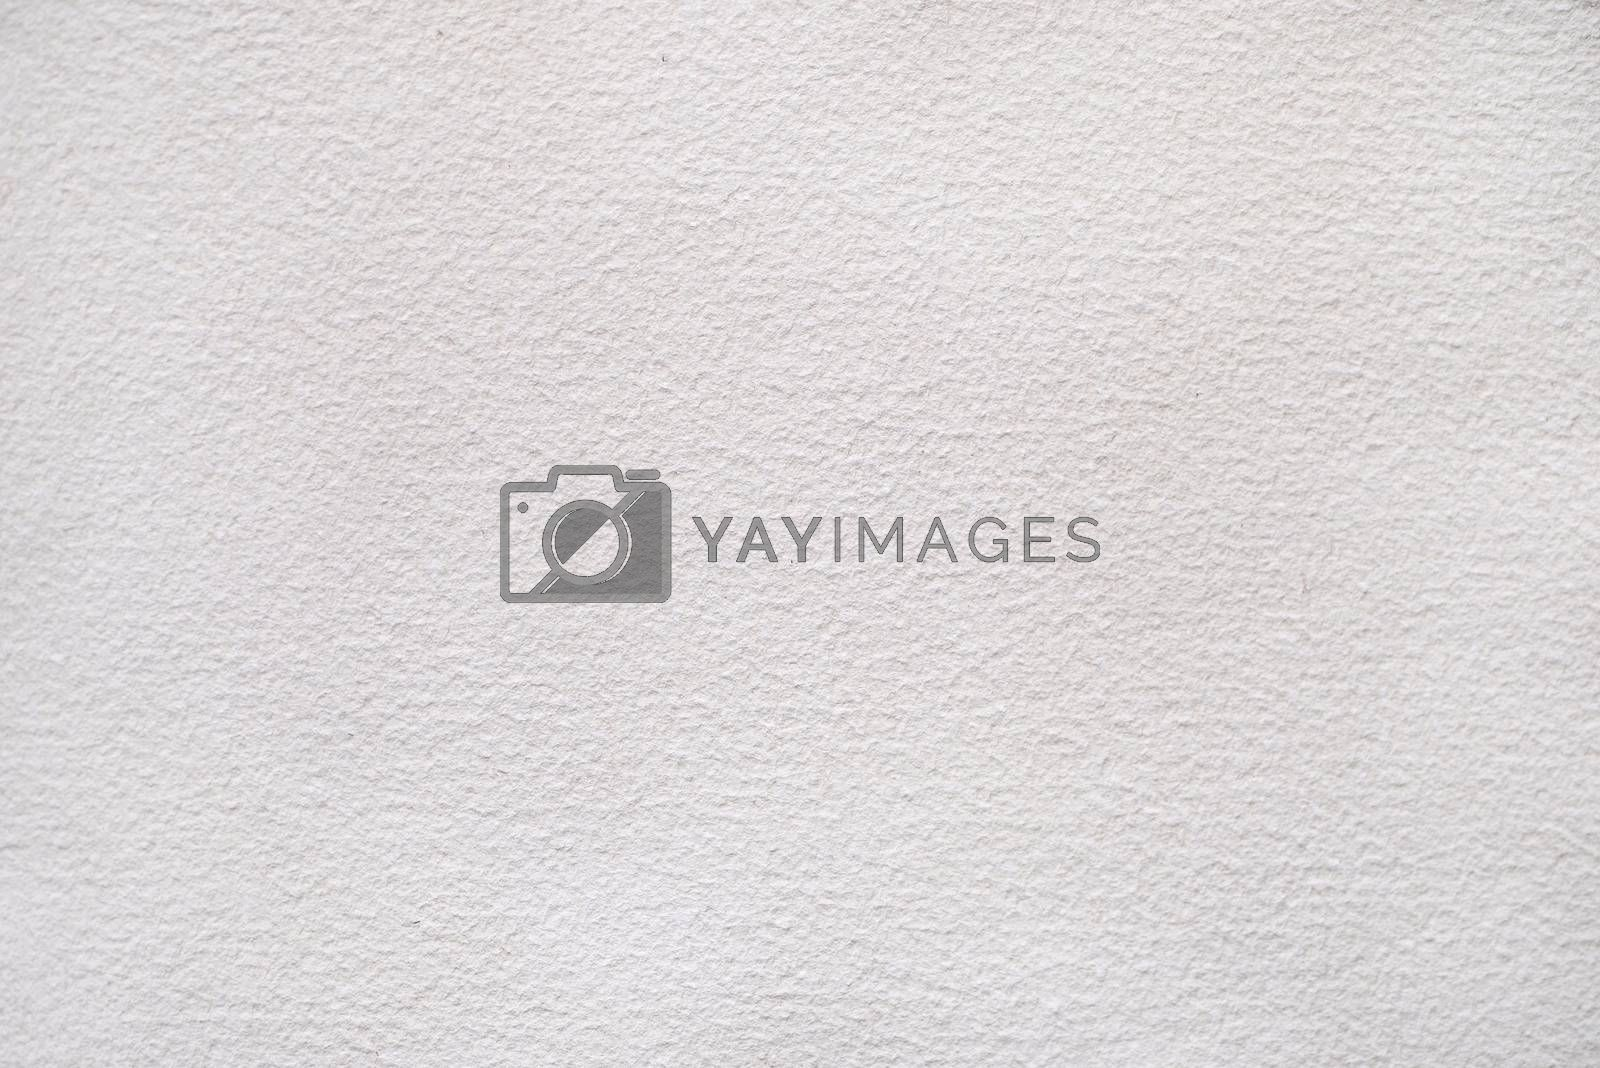 Royalty free image of Hand Made Paper by tony4urban